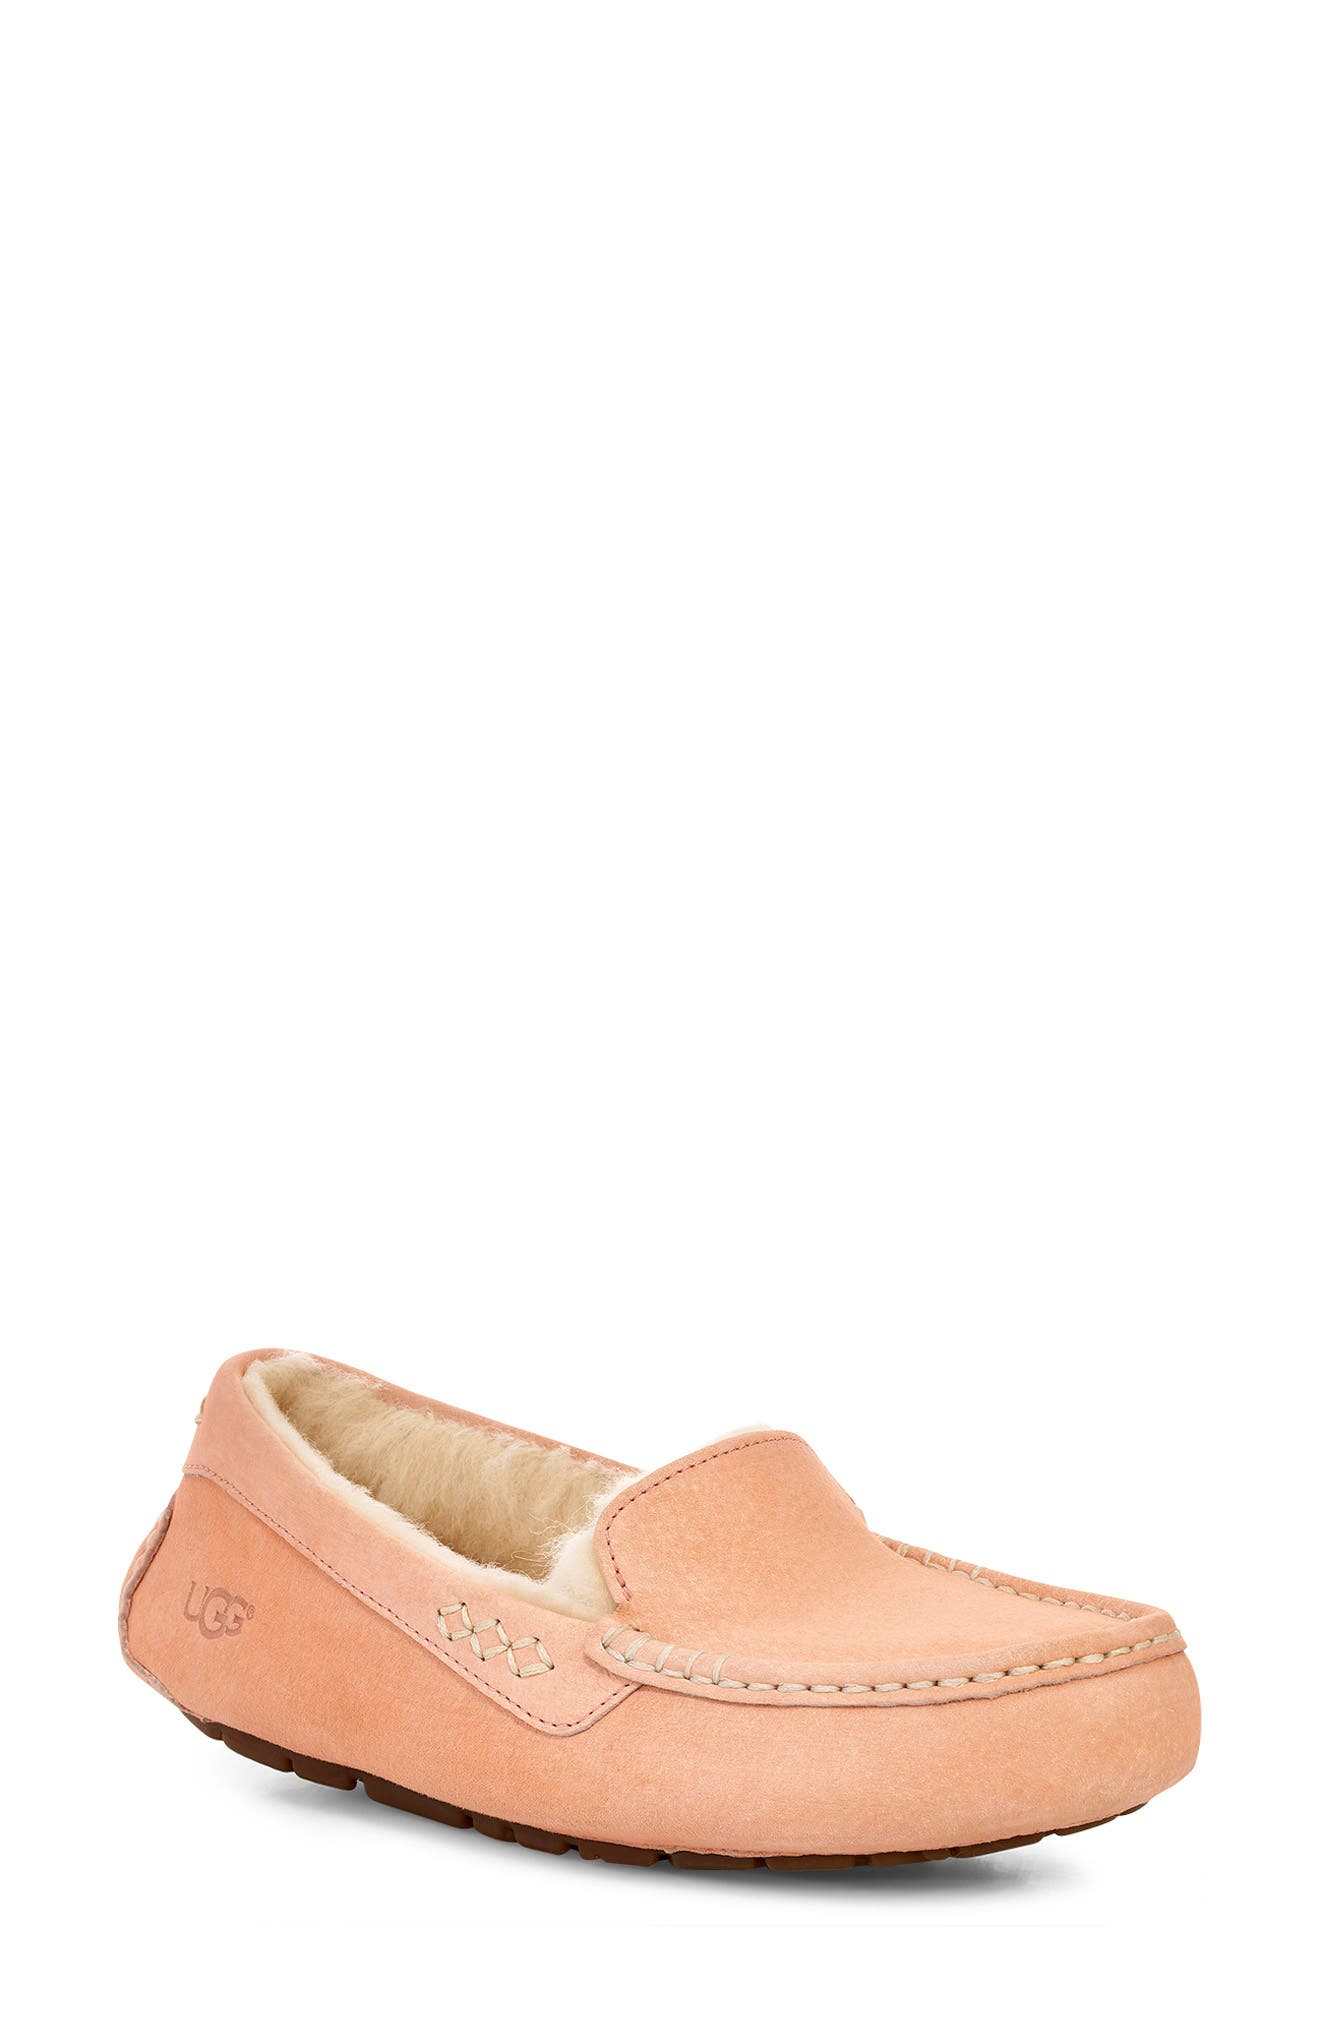 Ugg Ansley Water Resistant Slipper, Pink